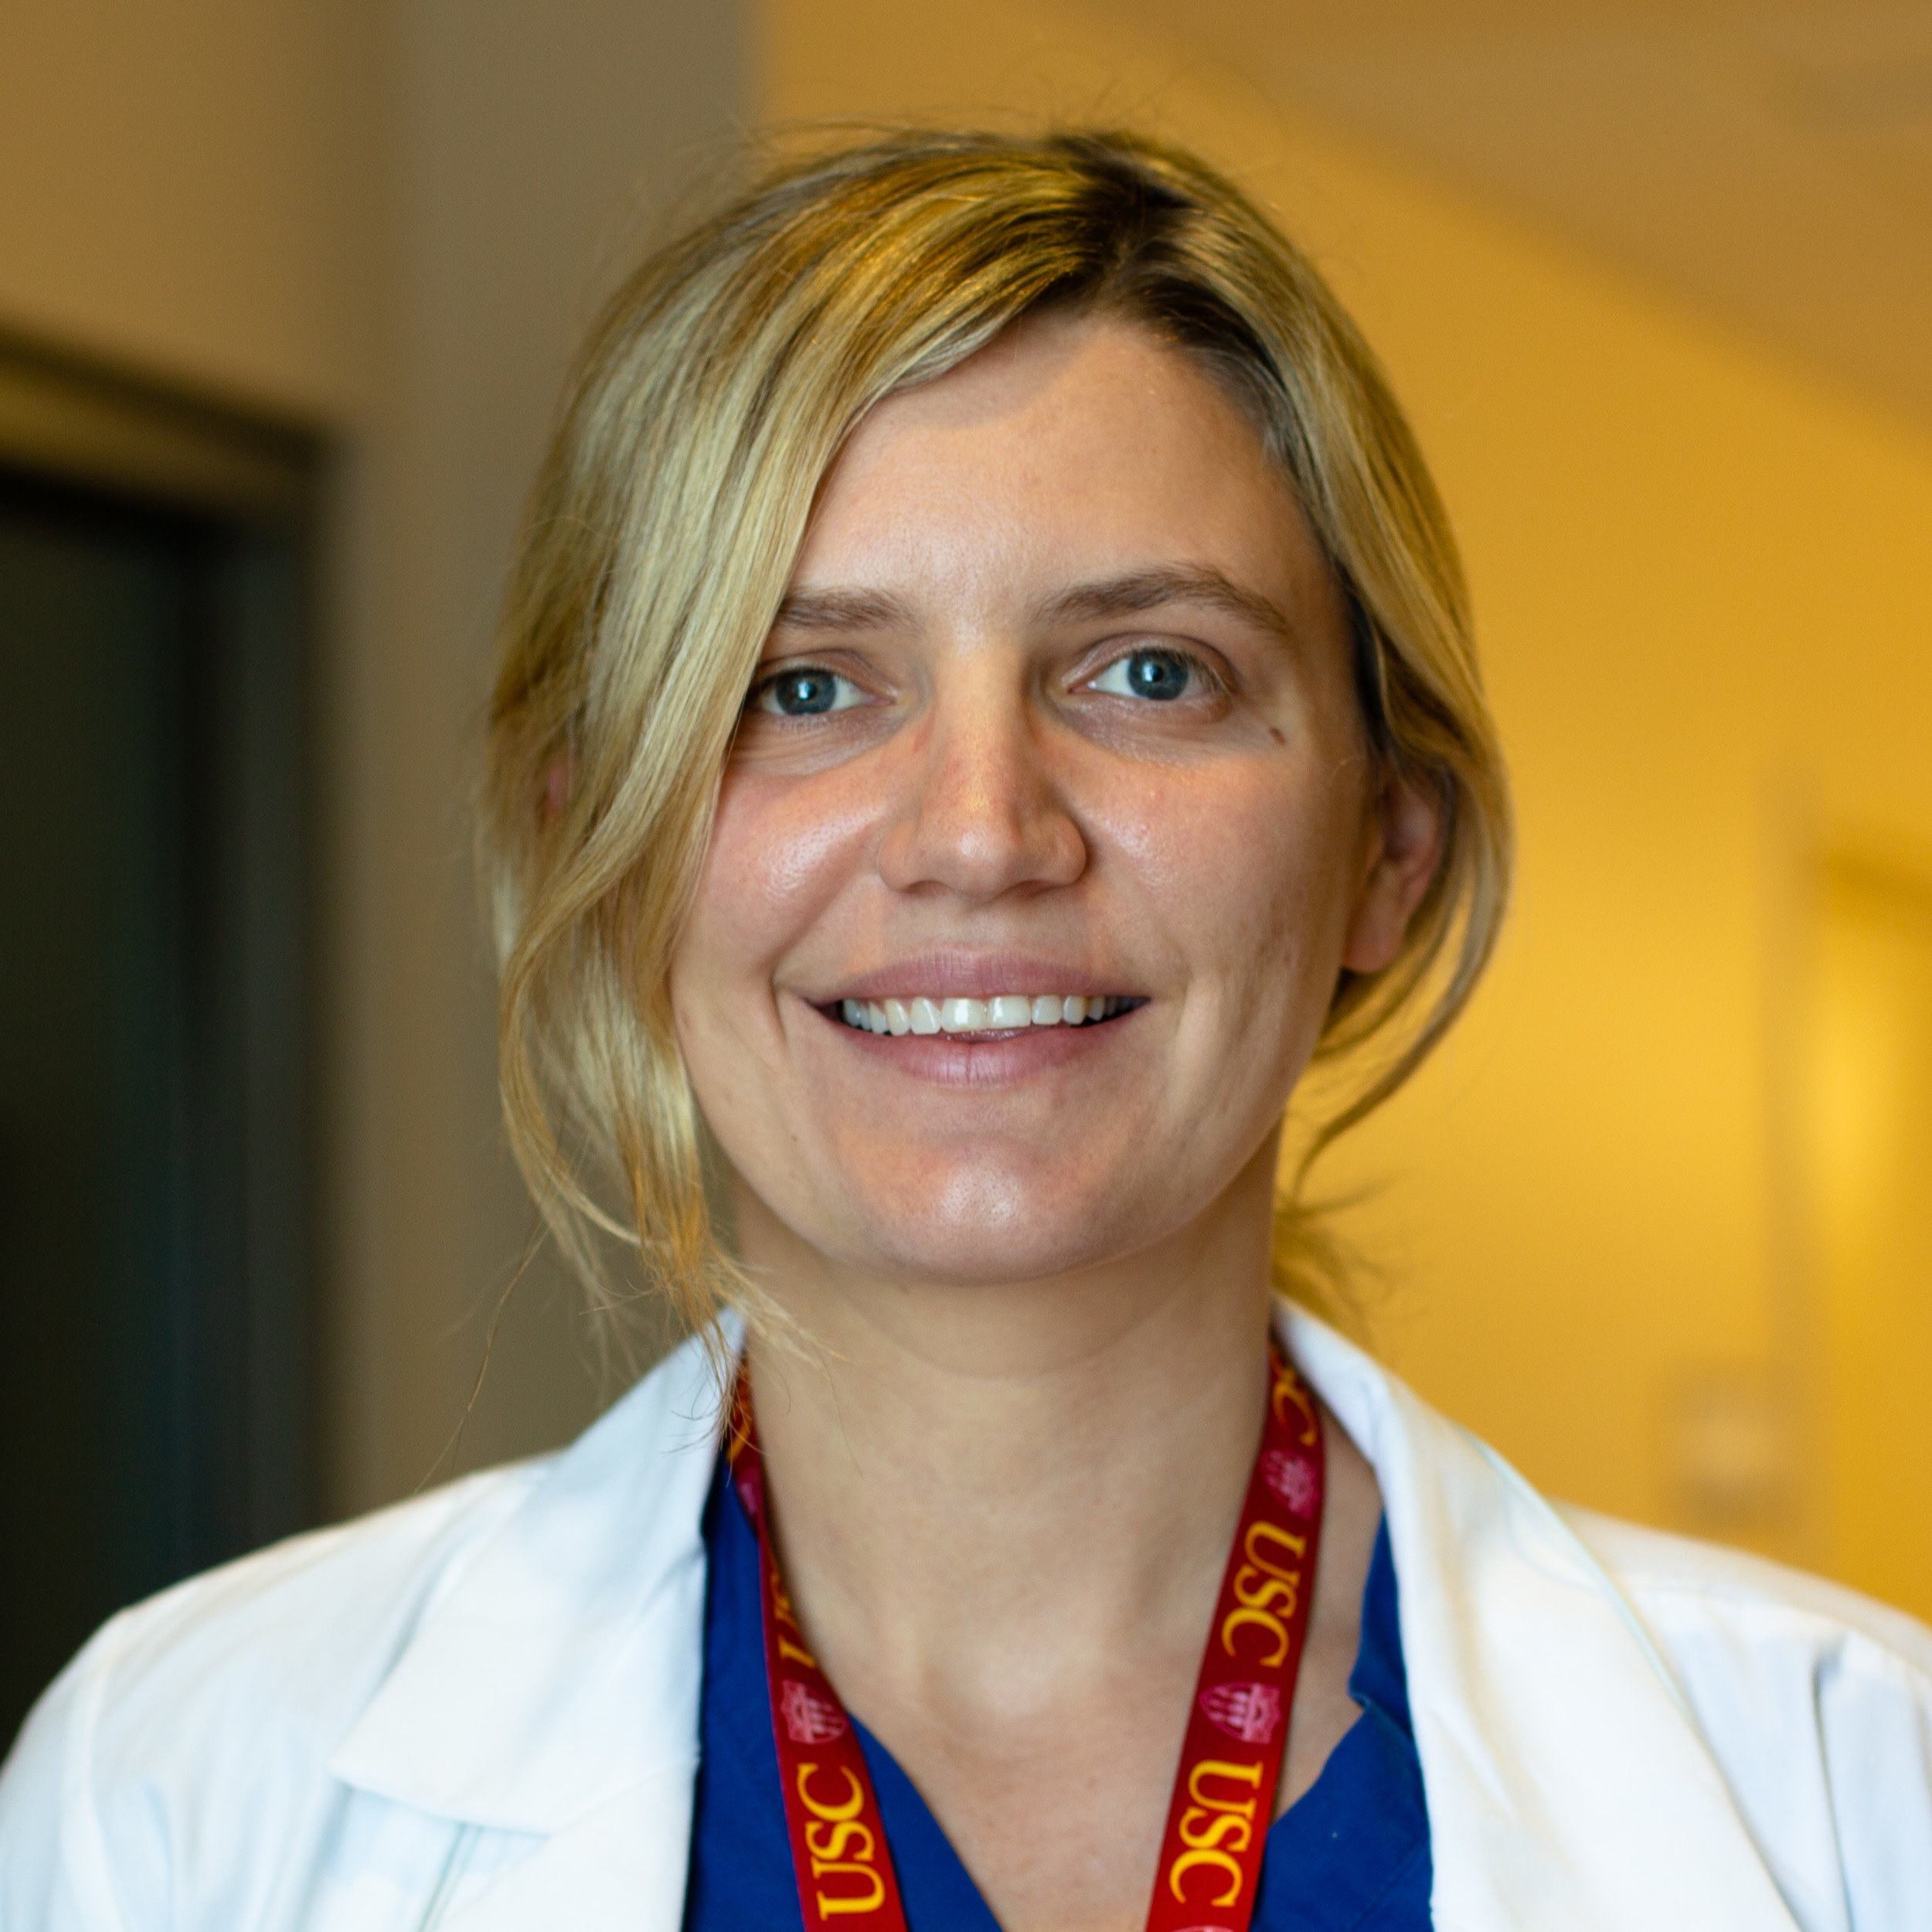 Copy of Katherine Loomis, MD<br>Michigan State